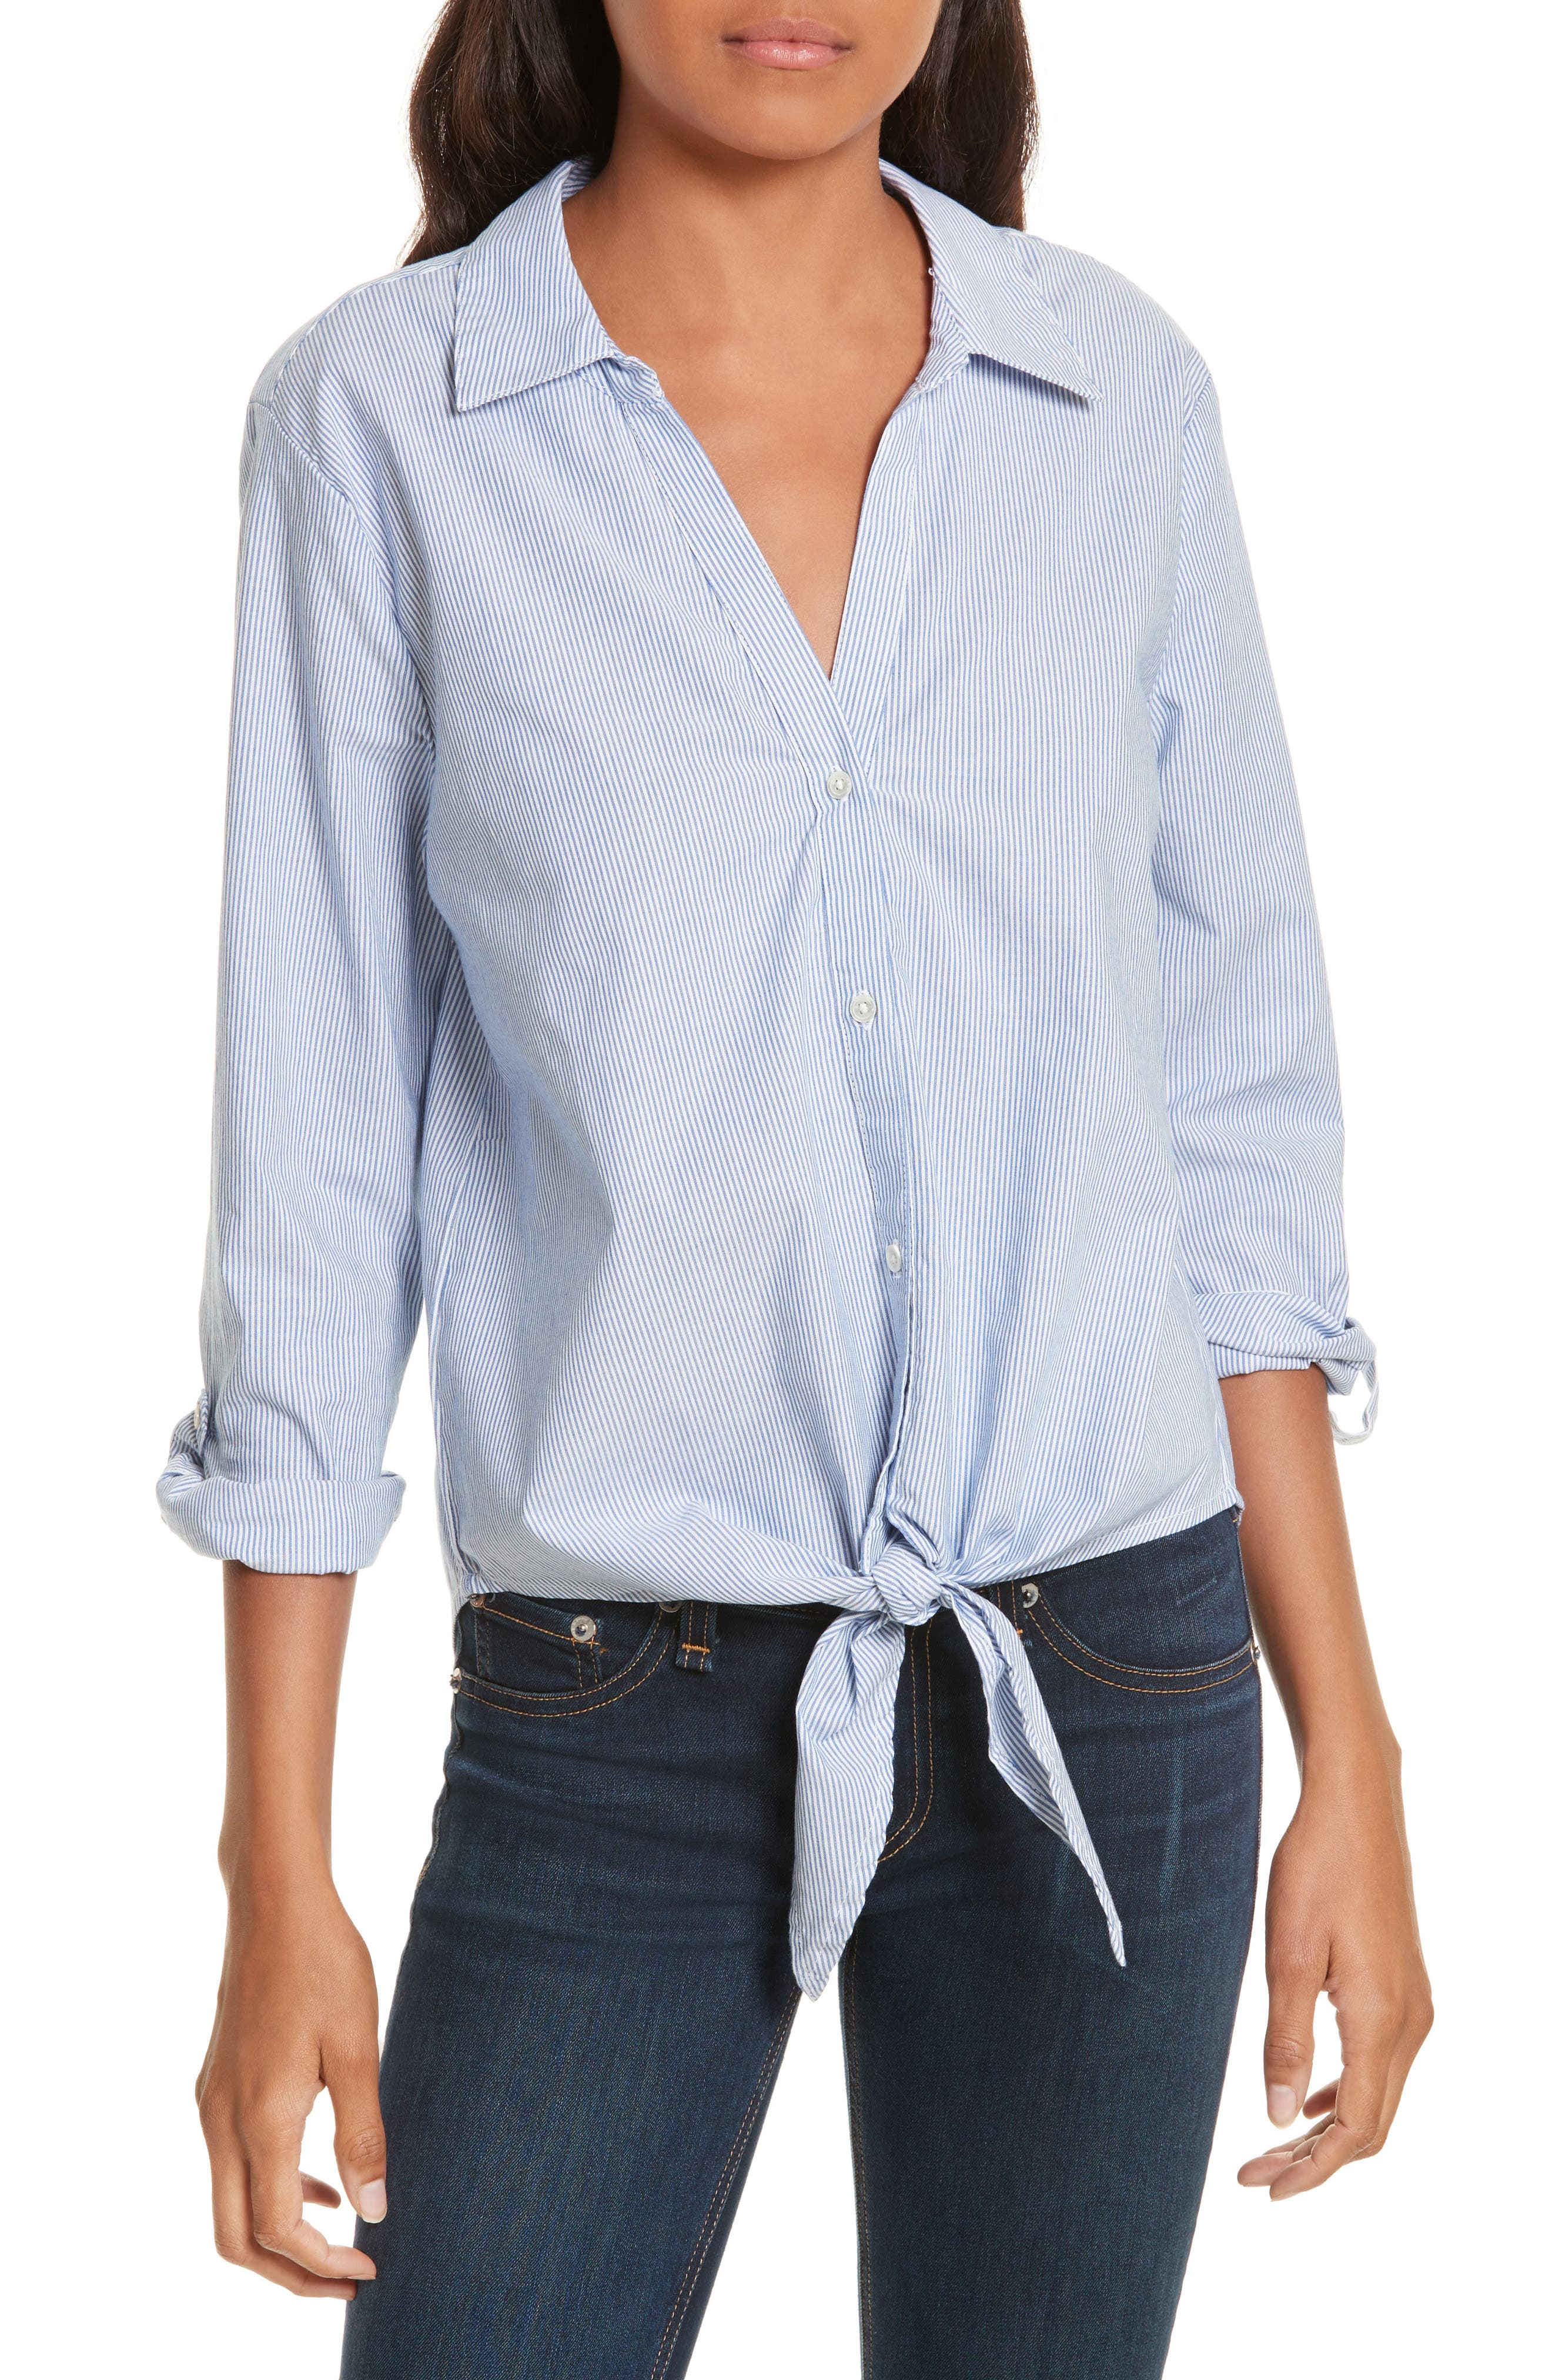 Main Image - Soft Joie Crysta Tie Front Shirt